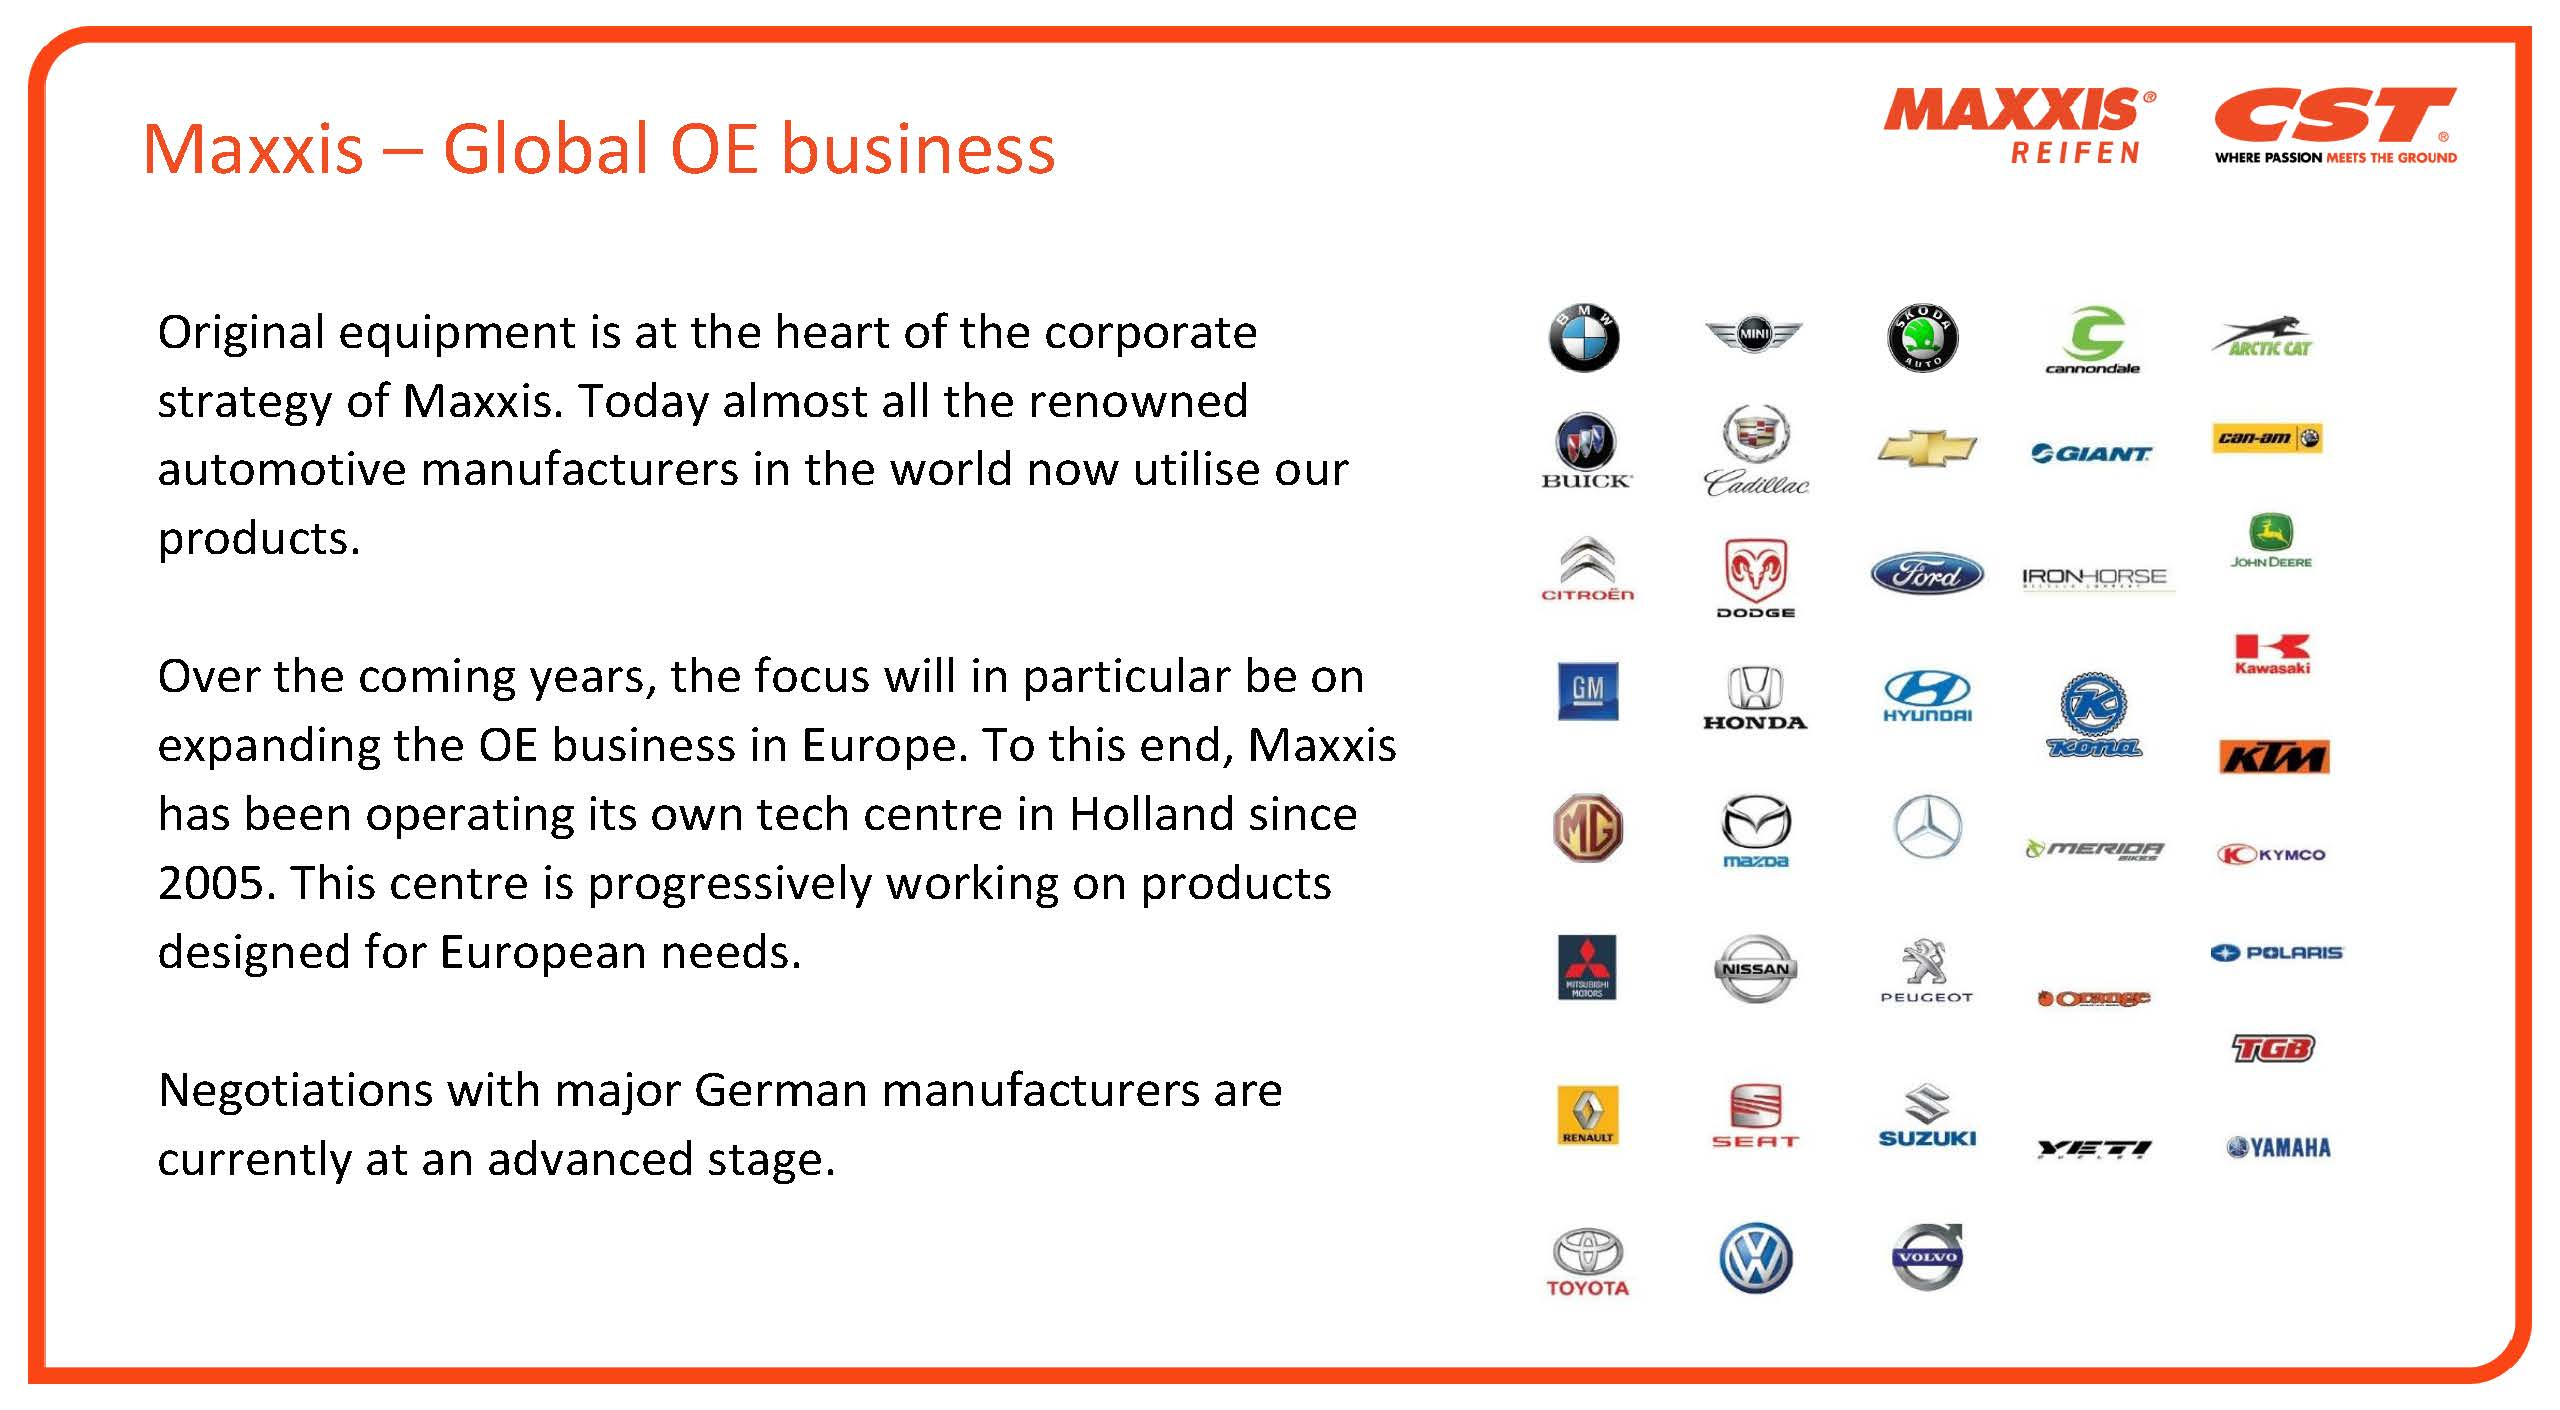 Maxxis Global OE Business Thumb